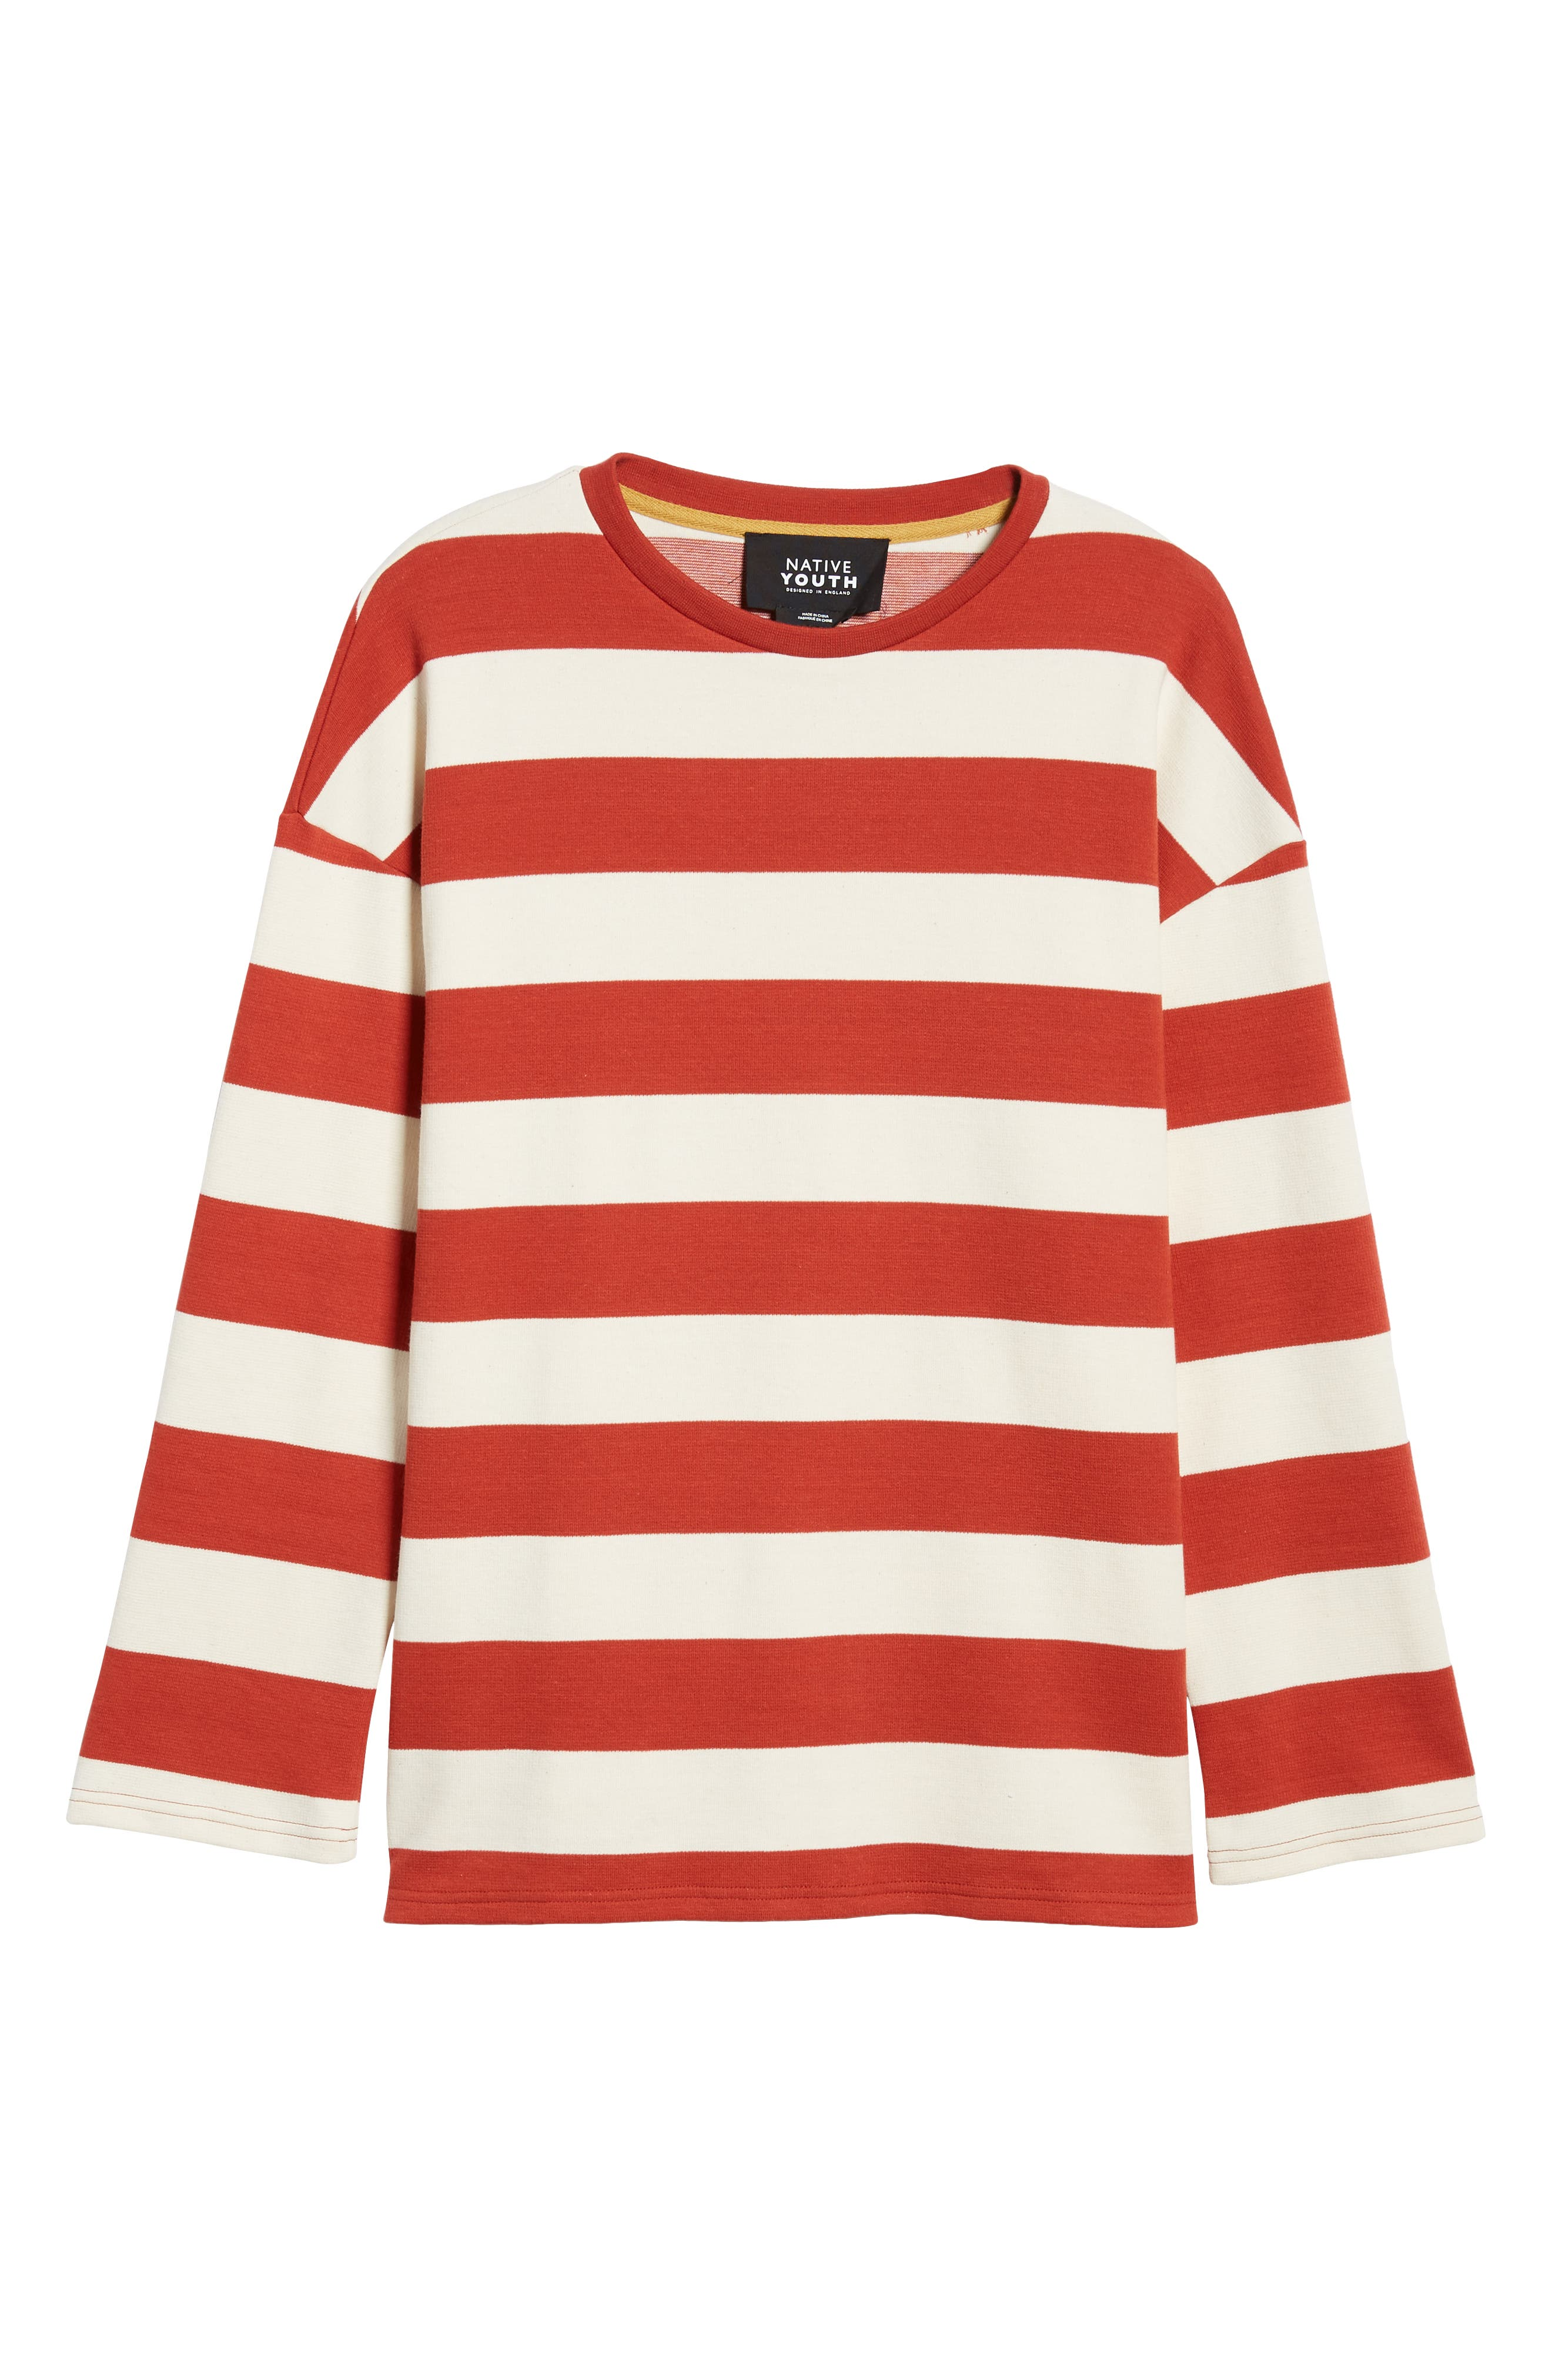 Stripe Crewneck Sweatshirt,                             Alternate thumbnail 6, color,                             ORANGE